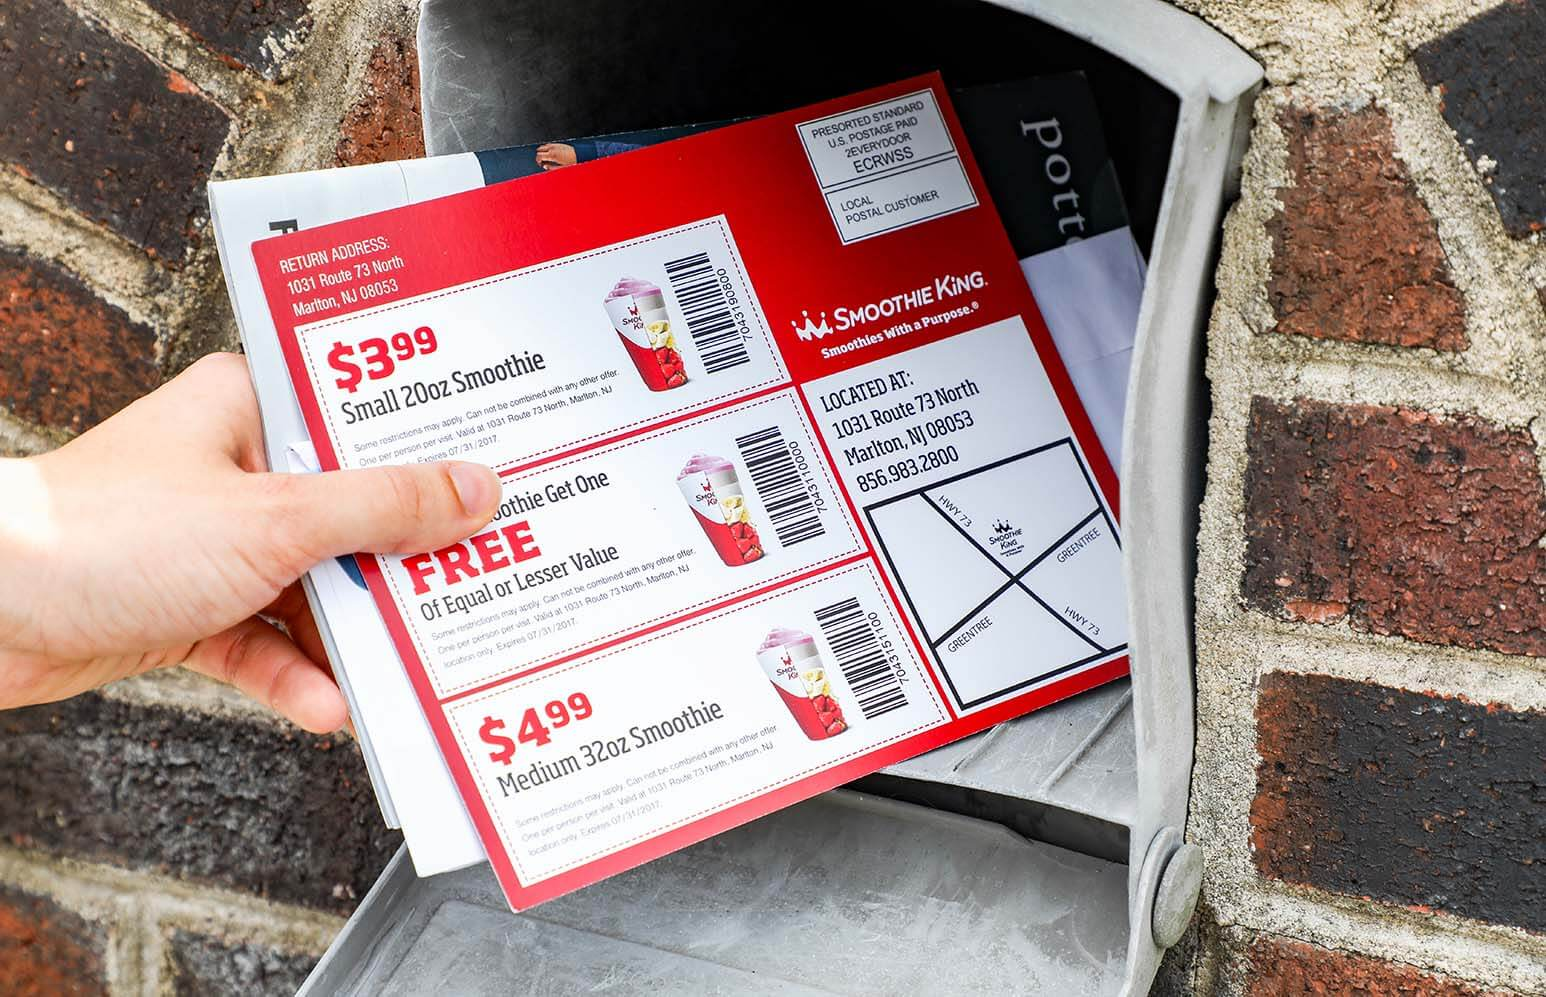 Marketing Smoothie King with EDDM® Postcards. Coupons grab the attention of those receiving them in the mail.